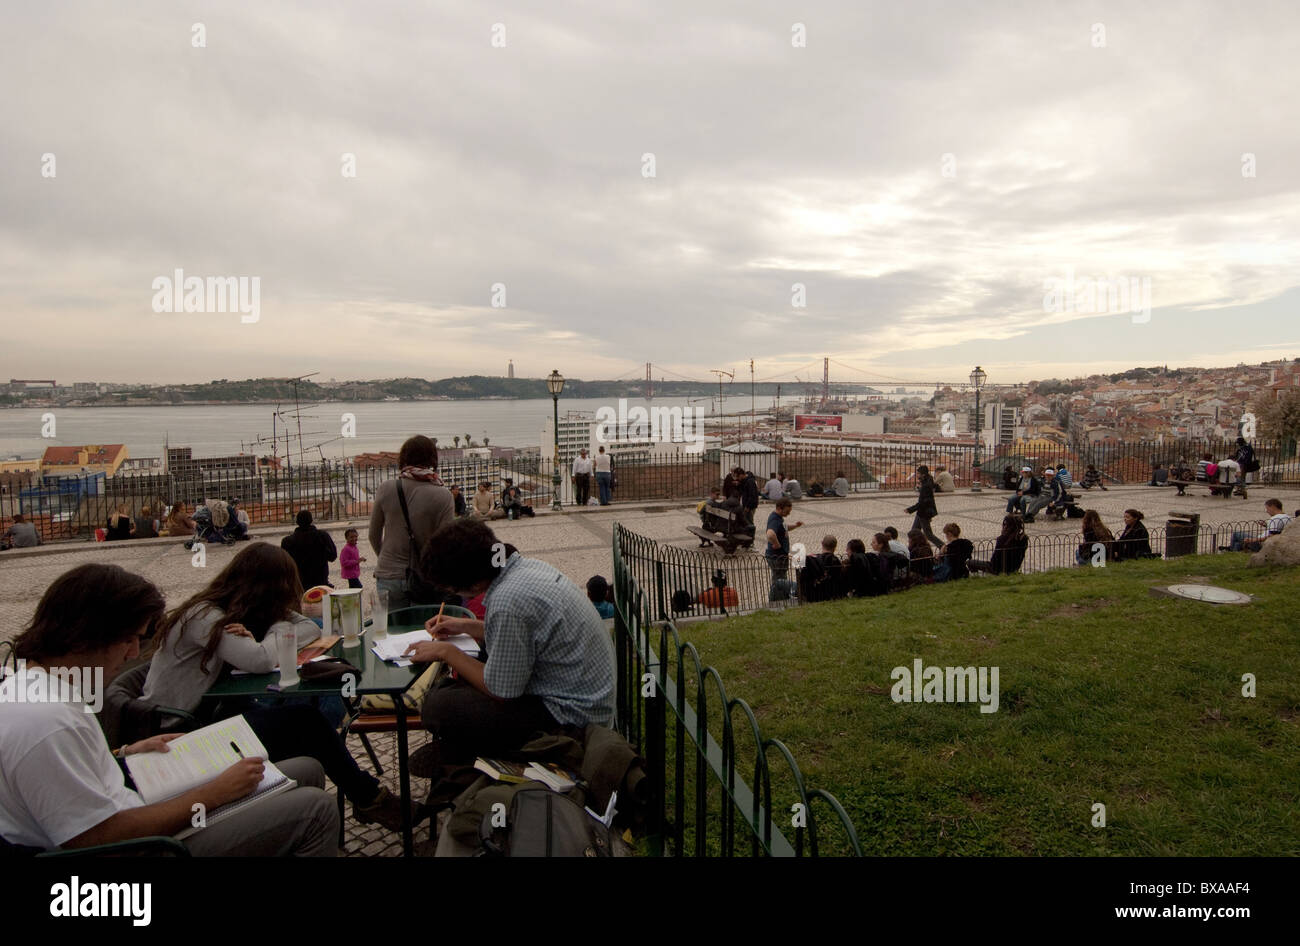 Viewpoint of Santa Catarina overlooking the Tage river and the 25 April bridge lisbon portugal - Stock Image